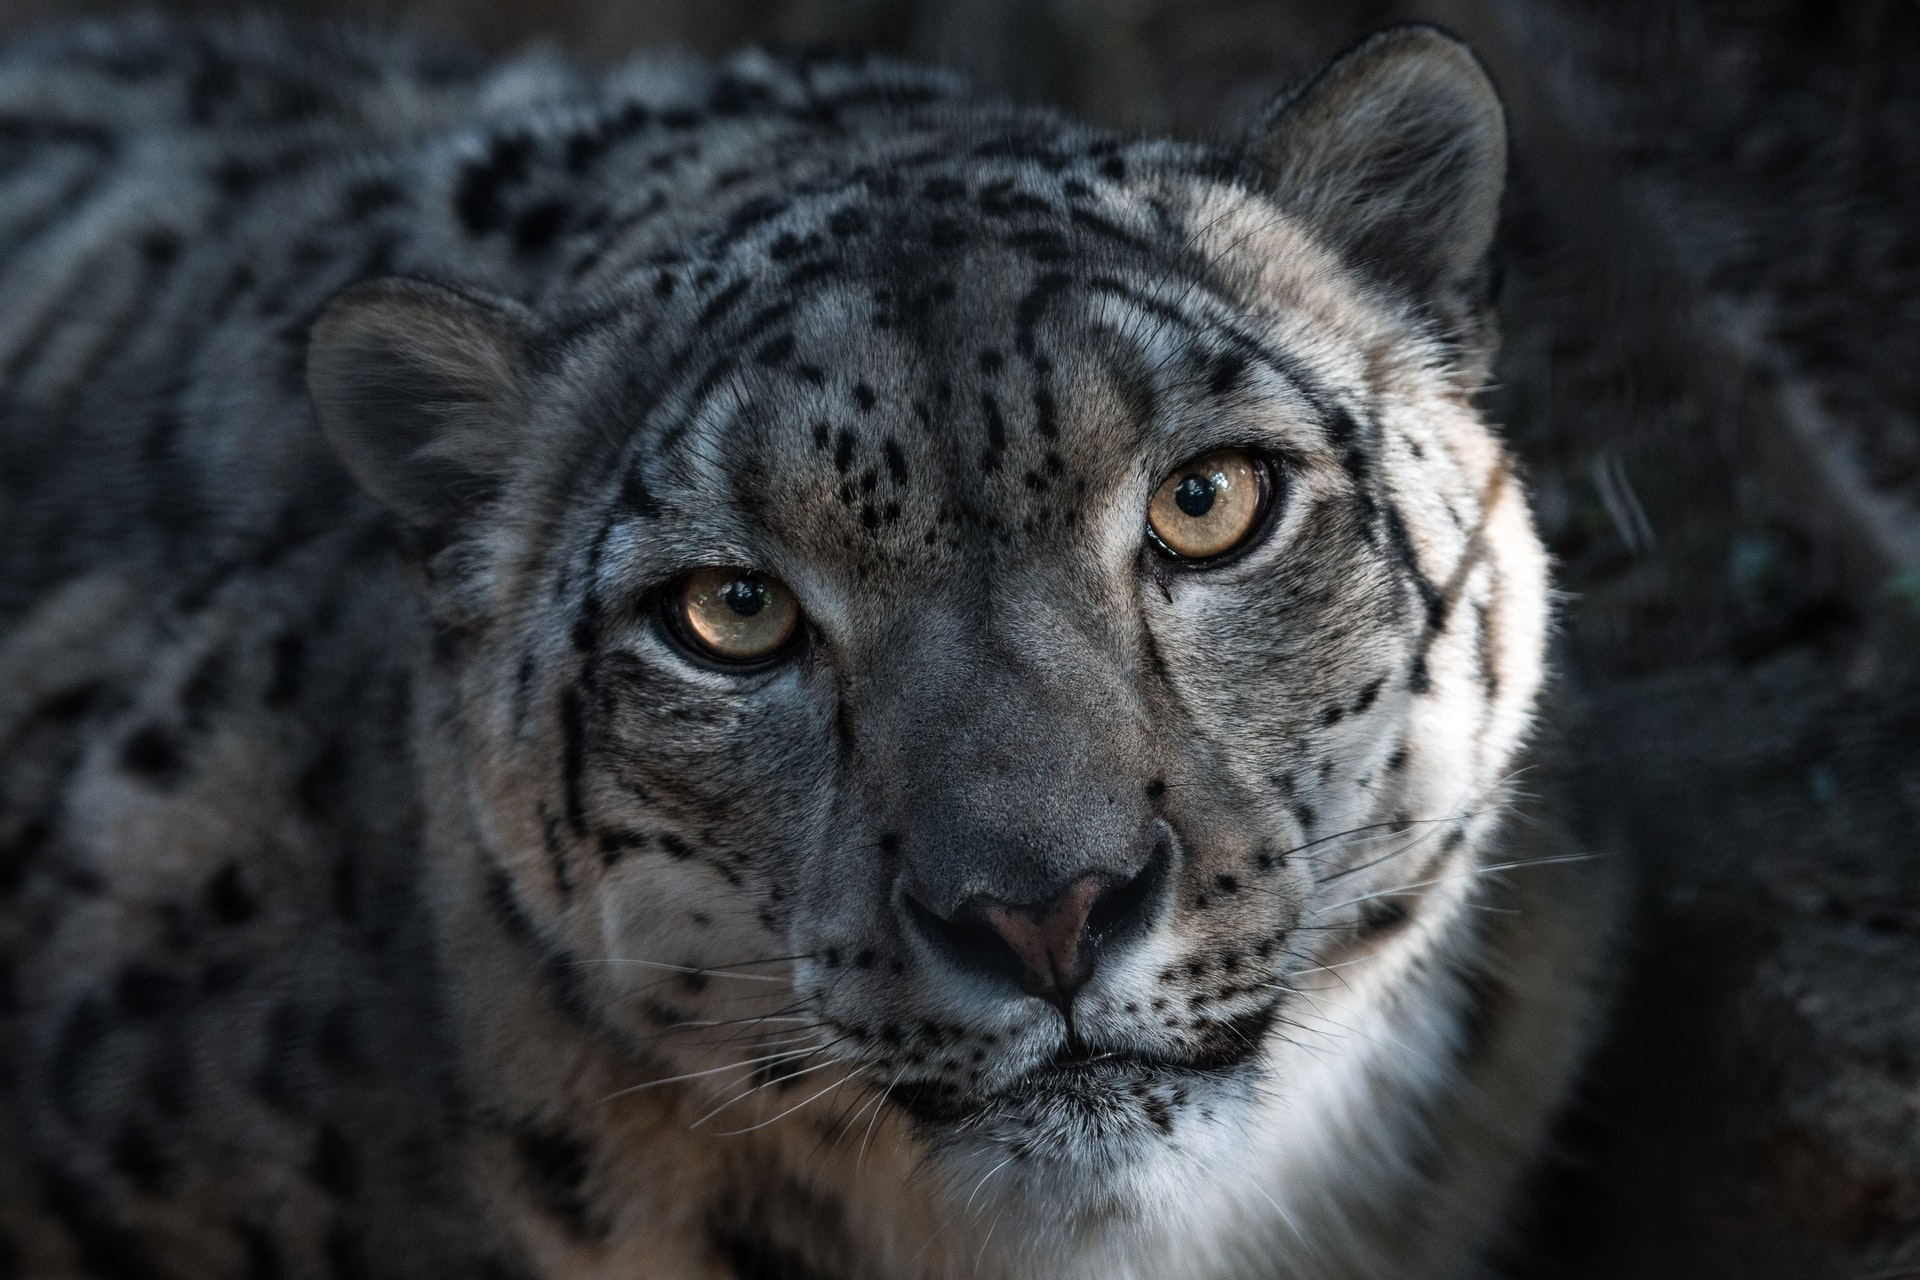 snow leopard facts, eyes